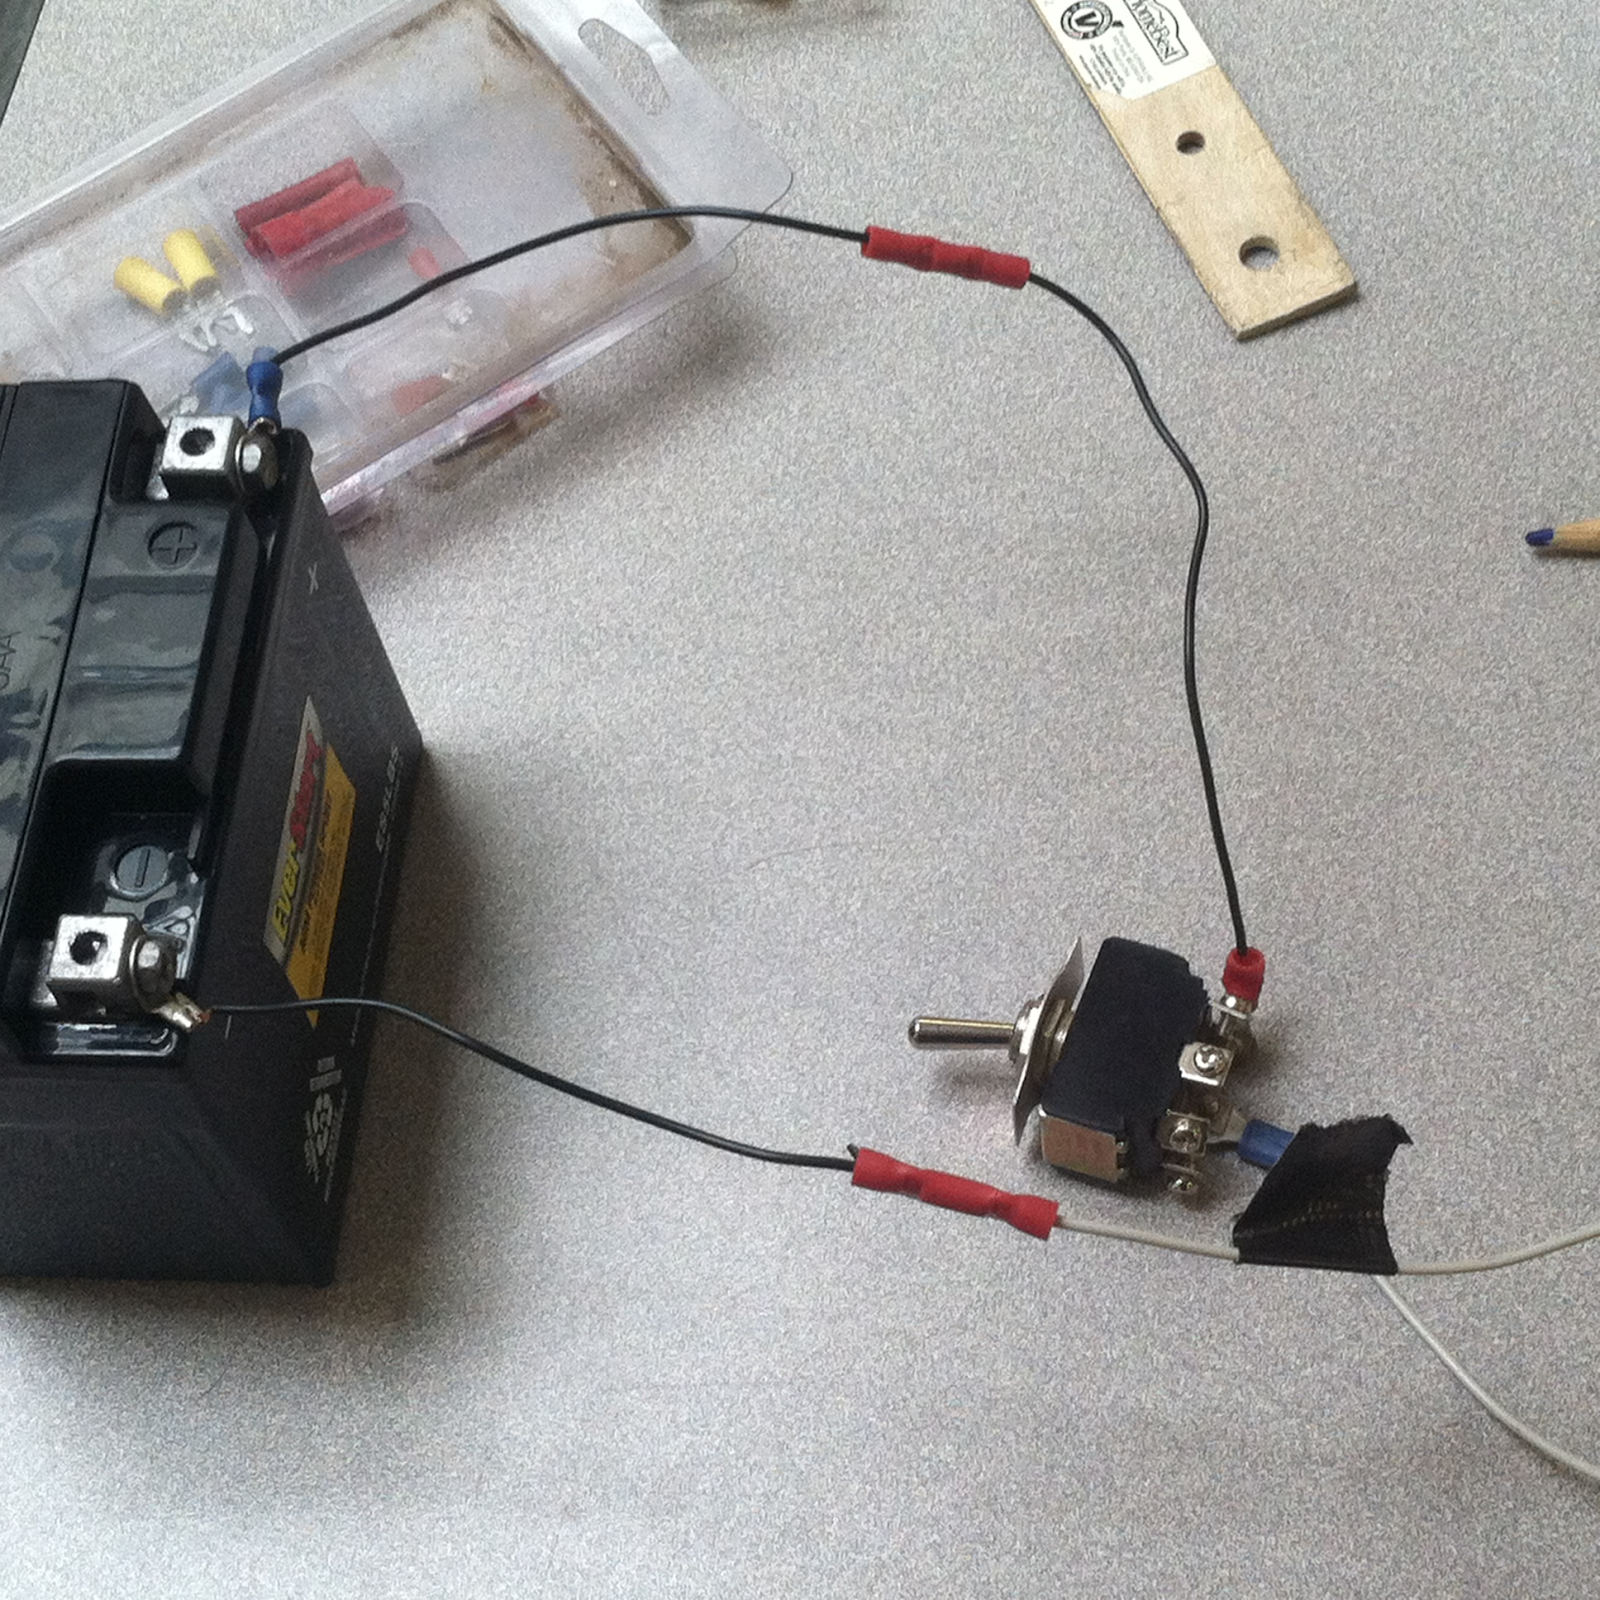 How to Build a Solar Powered Boombox: 10 Steps